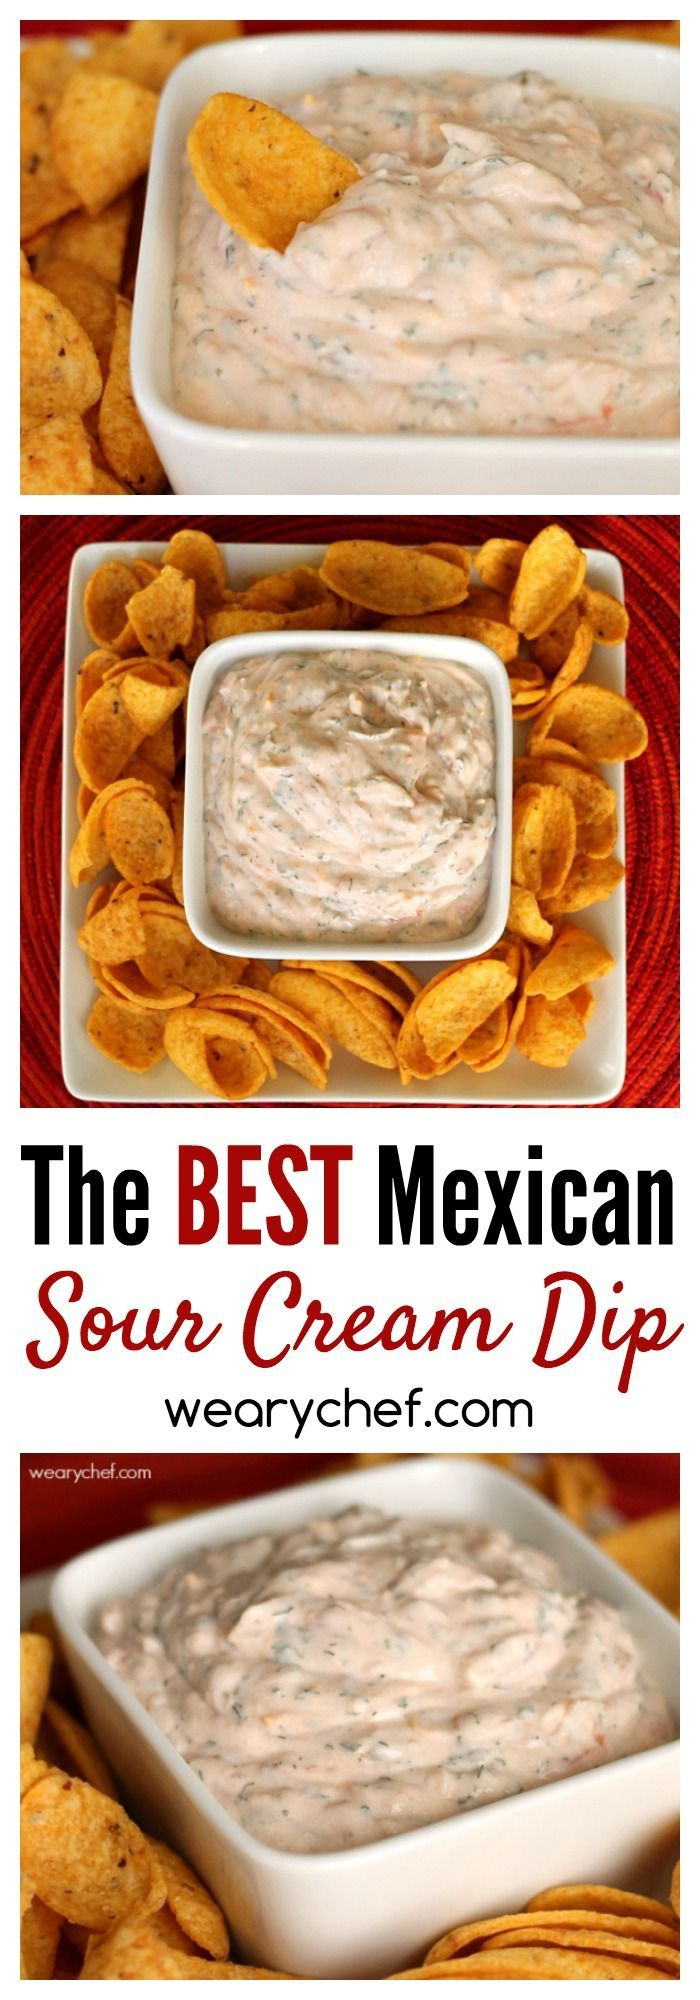 Easy Mexican Sour Cream Dip